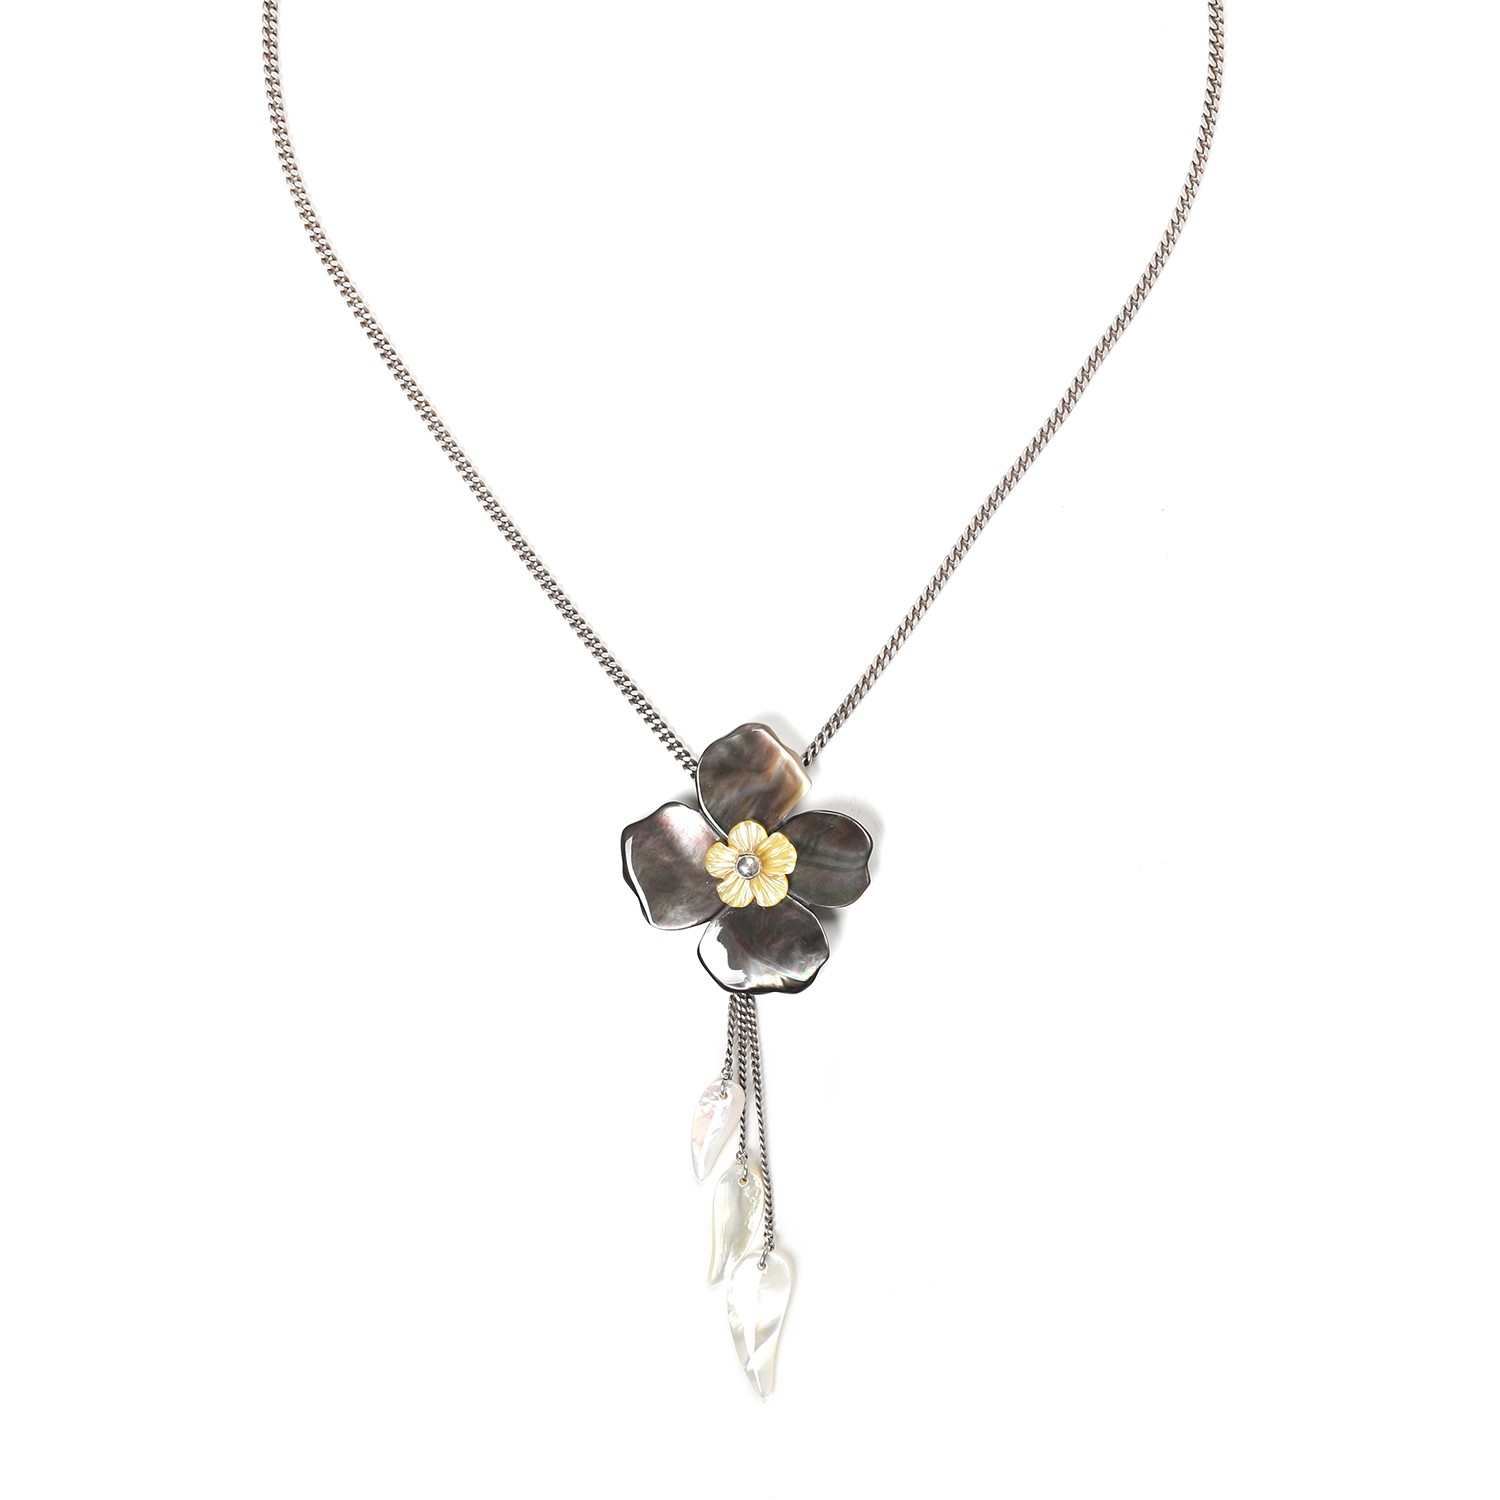 FLEURS DE NACRE blacklip necklace